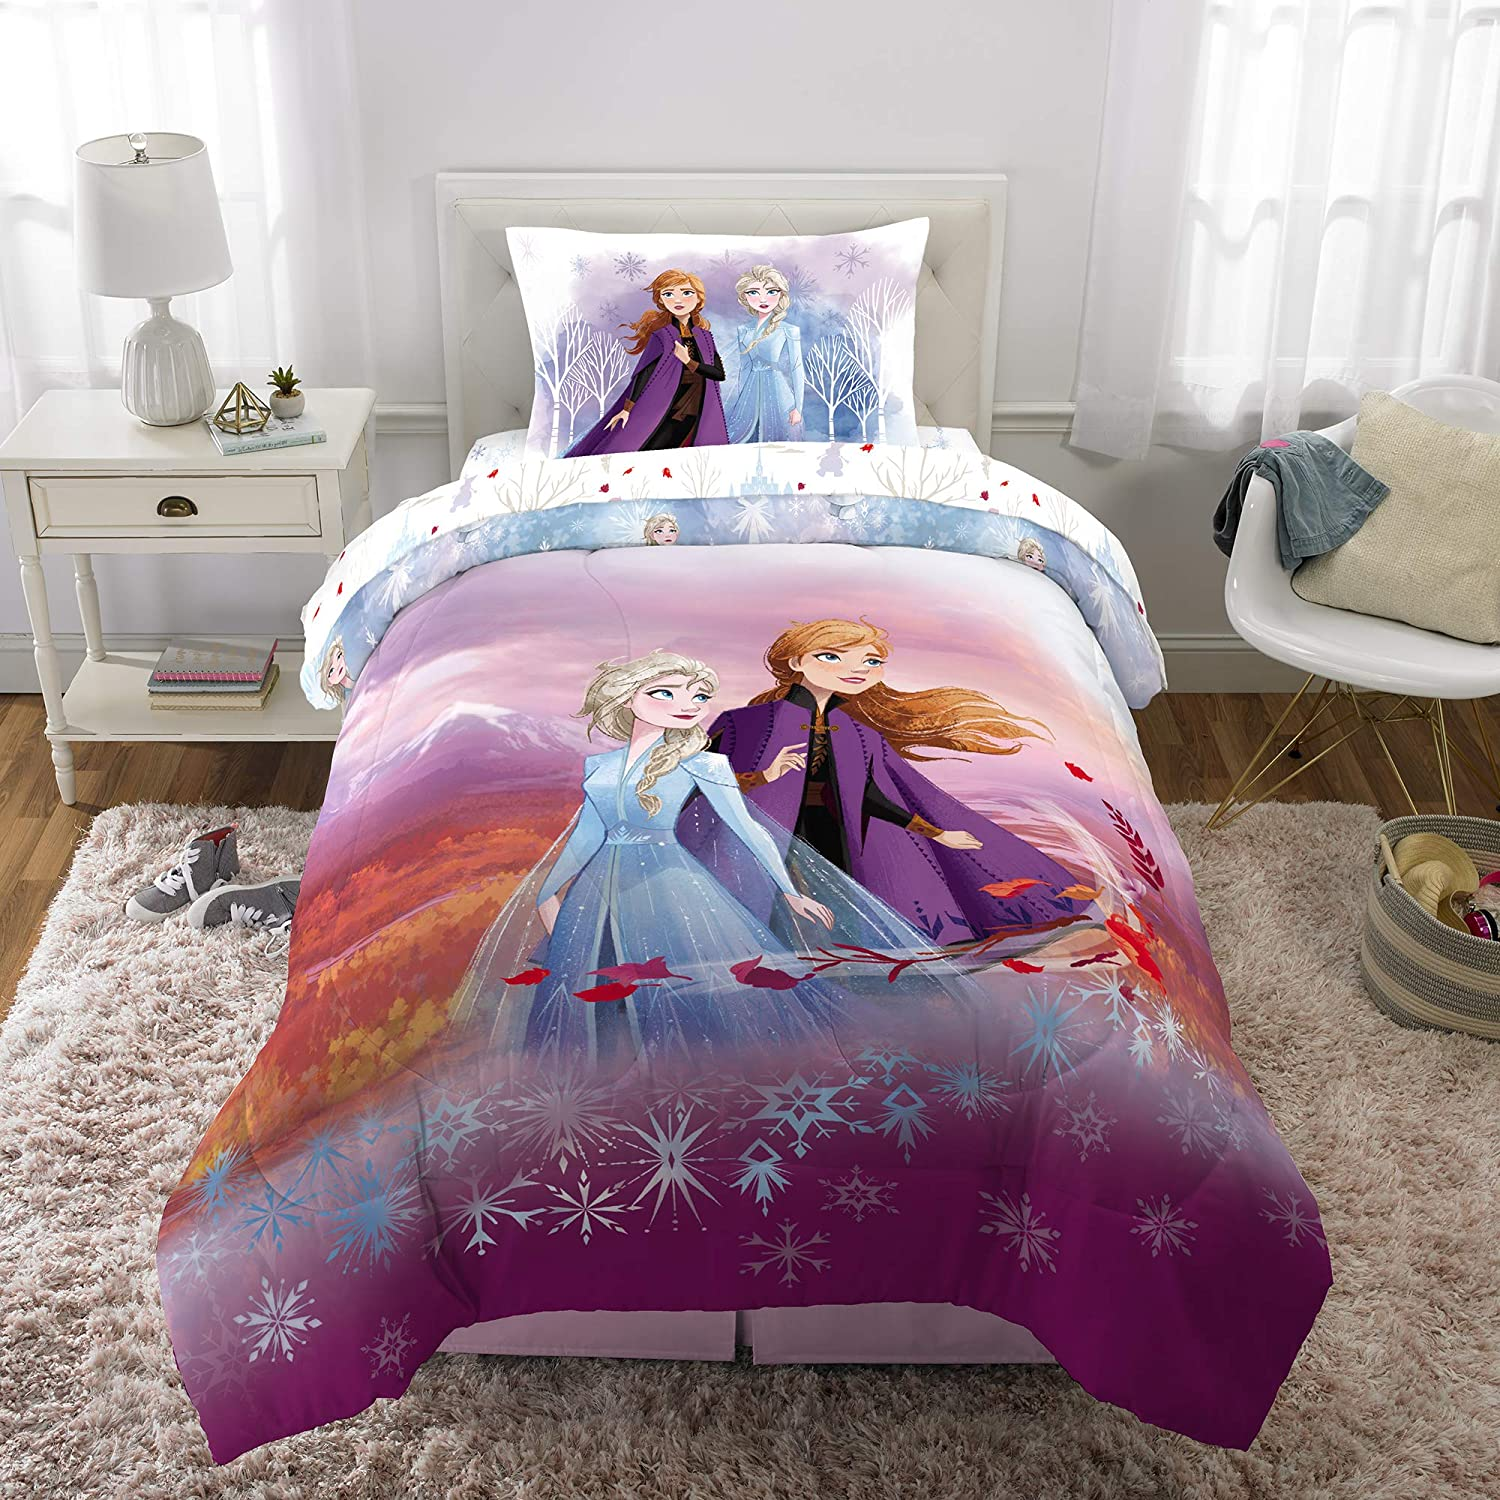 Twin Comforter Set with Sheets 4 Pcs. Spirit of Nature Frozen Girls' Bedding Set